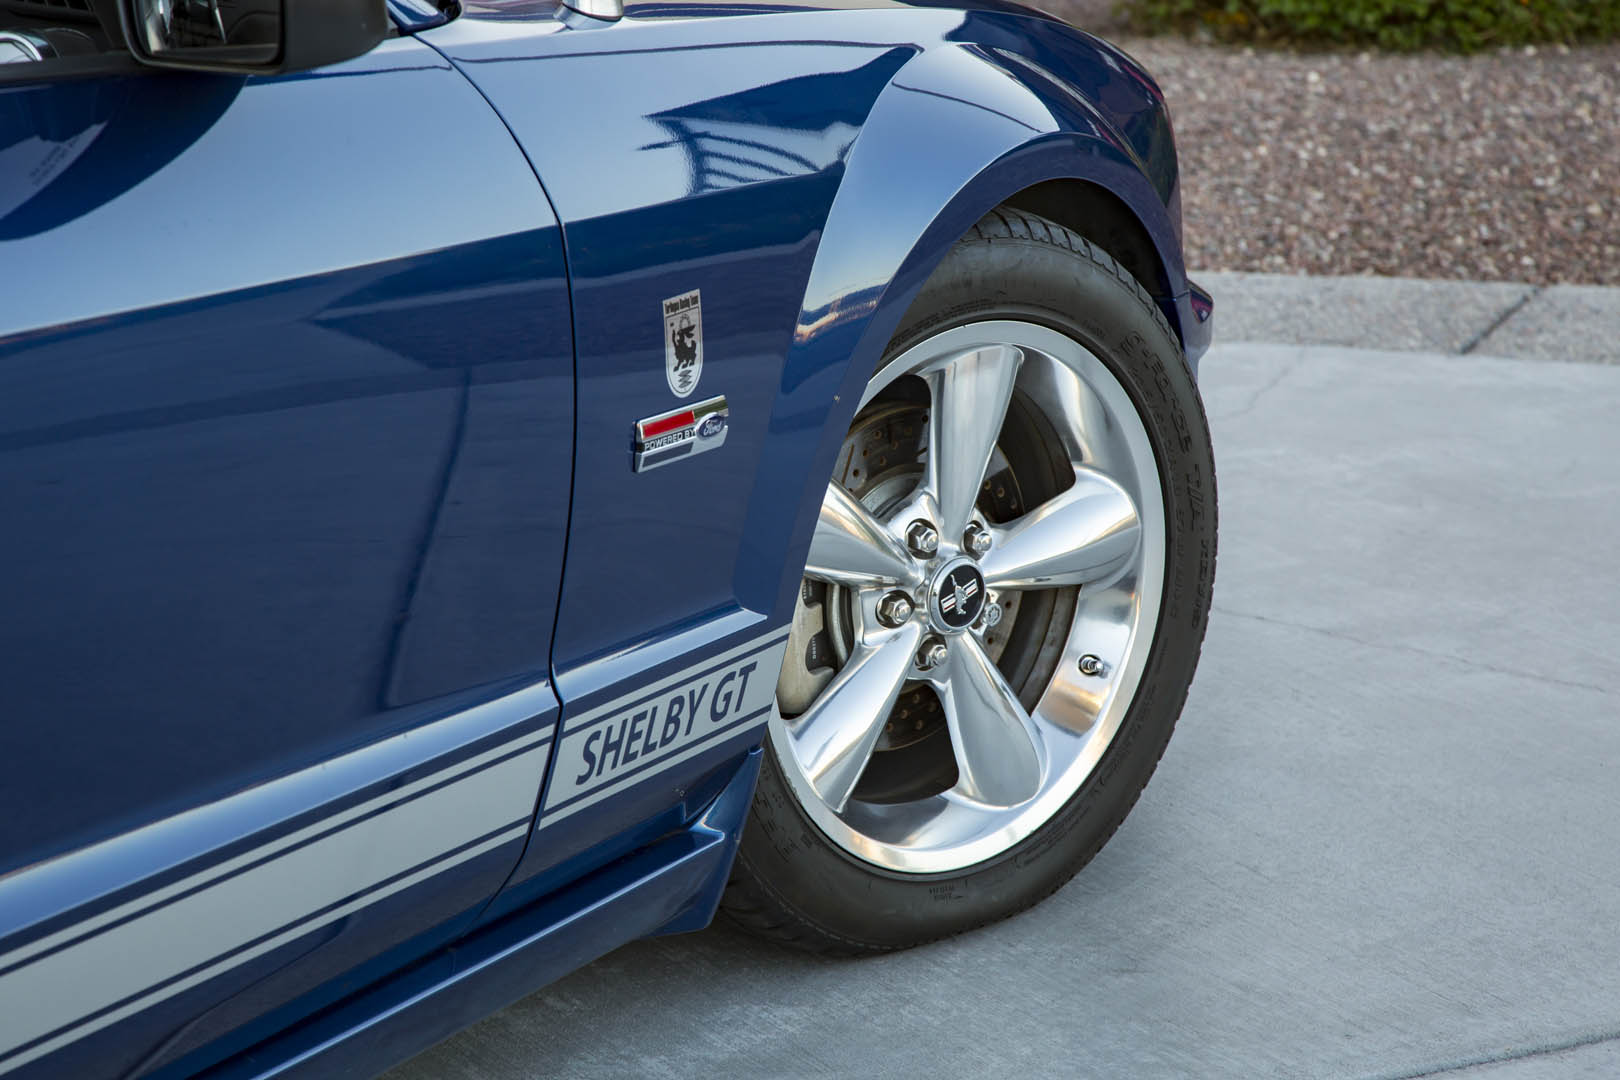 2007 Shelby GT convertible prototype front quarter panel detail